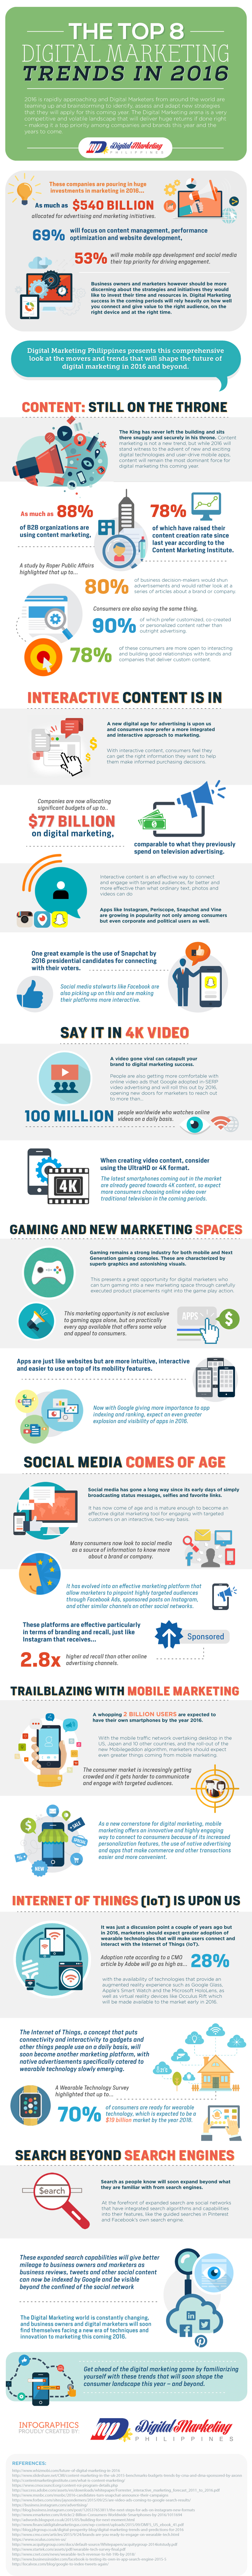 The Top 8 Digital Marketing Trends in 2016 (Infographic) - An Infographic from Digital Marketing Philippines